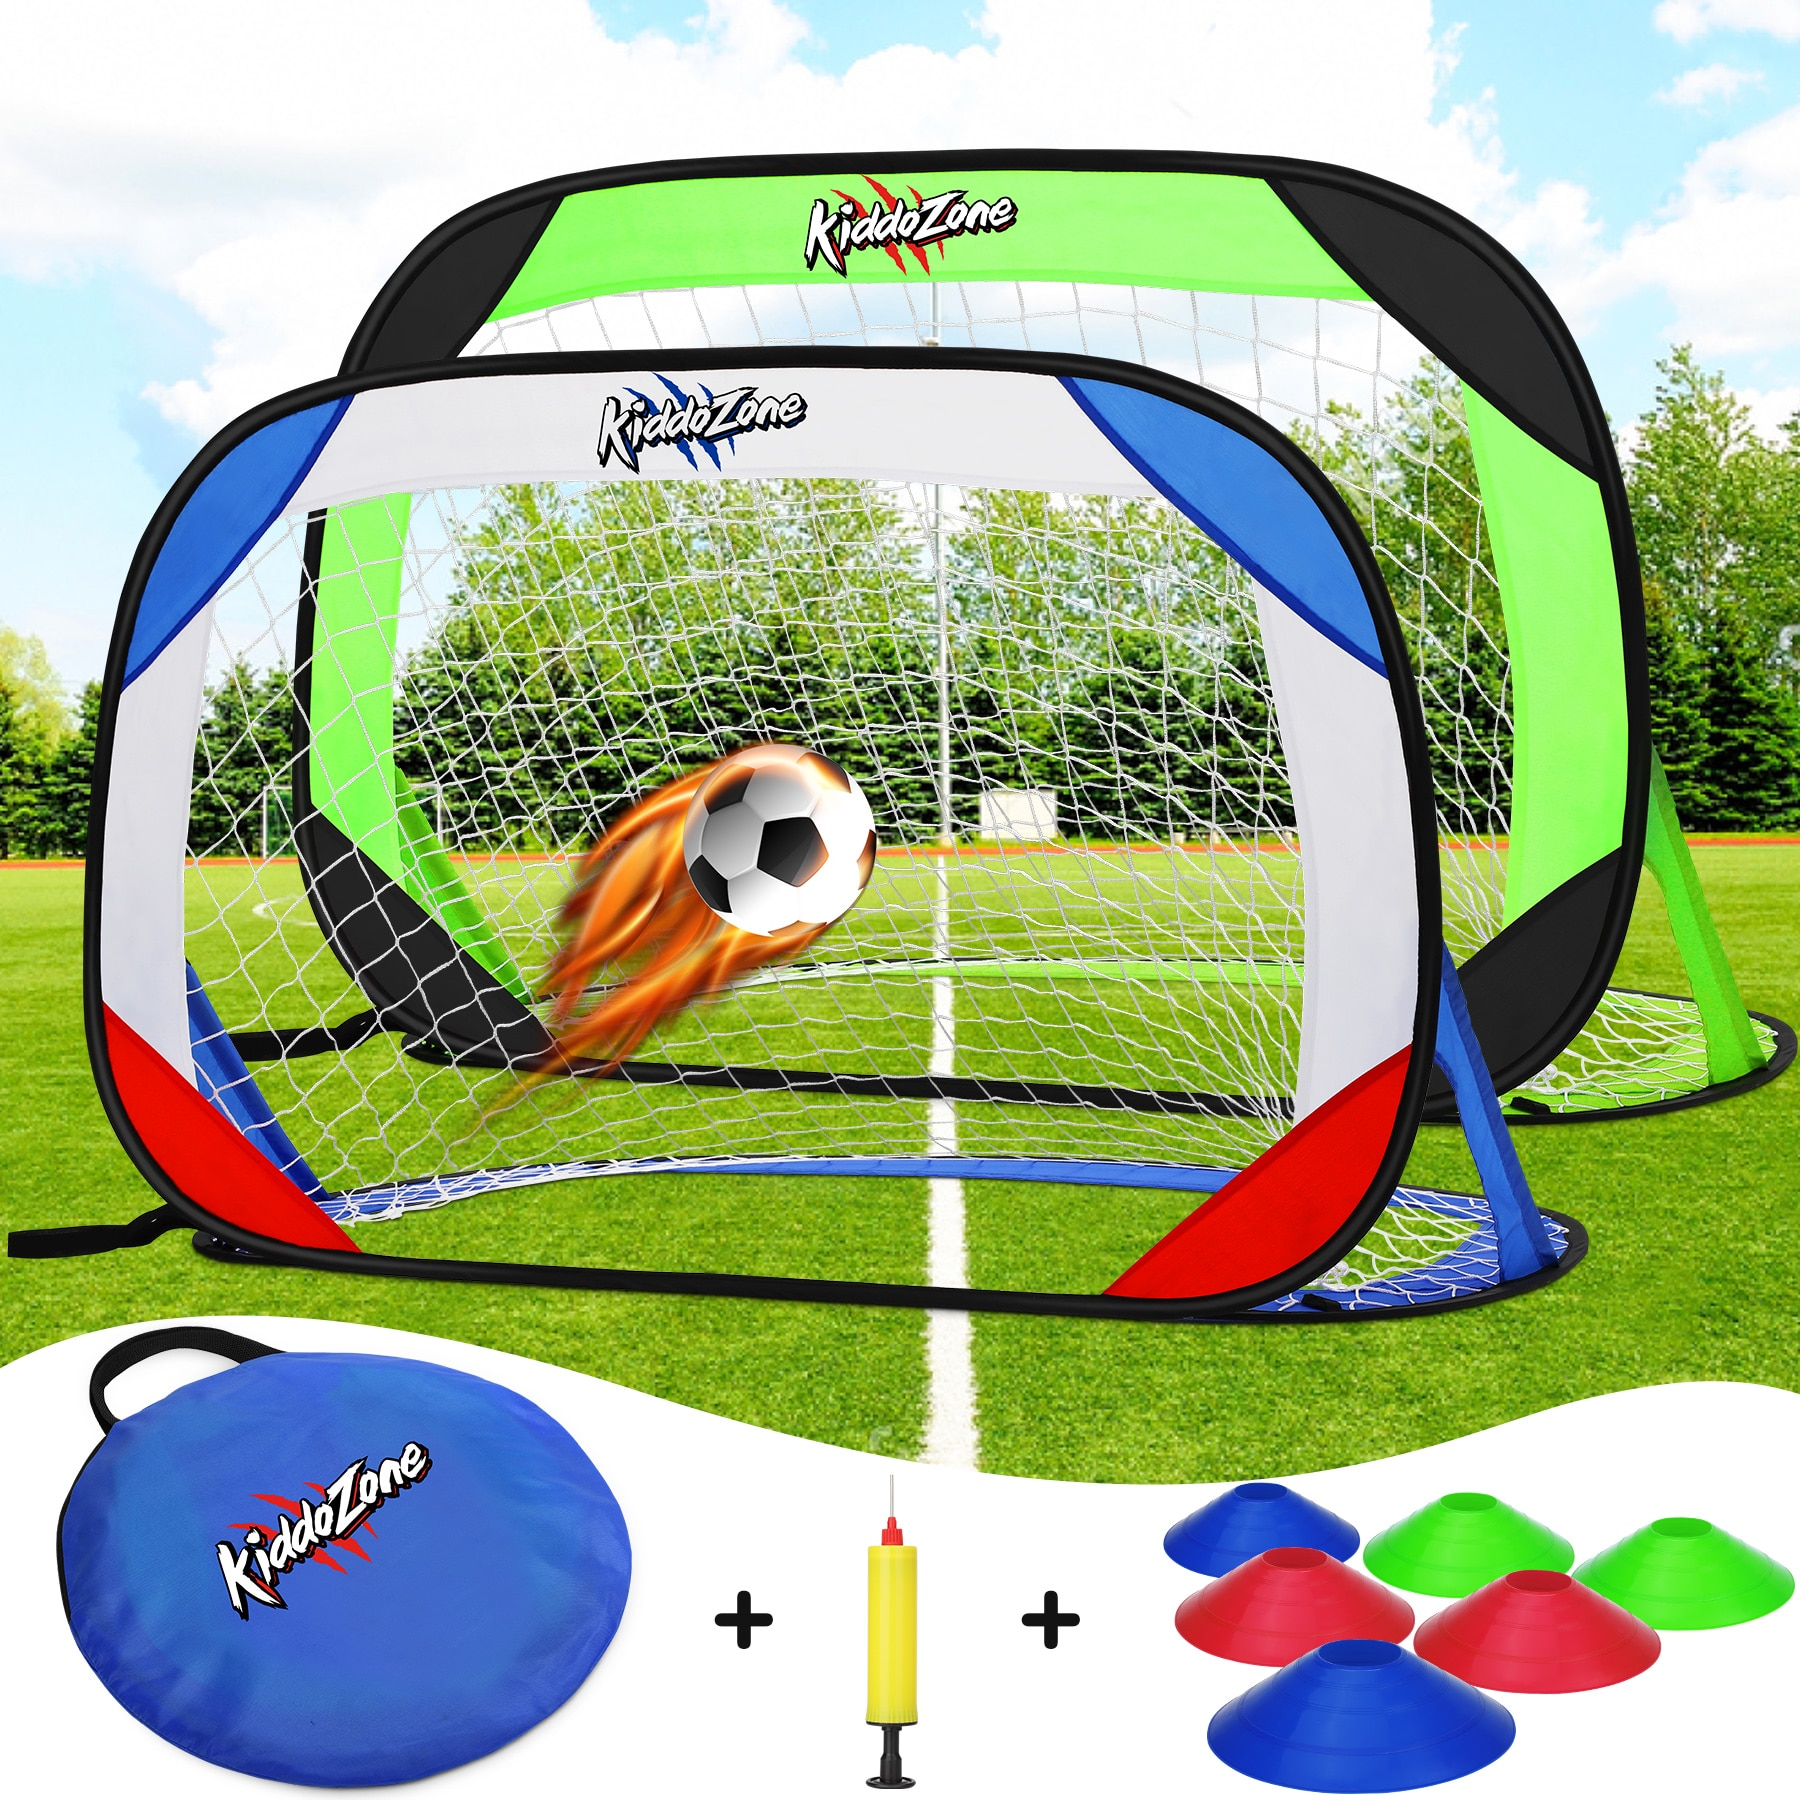 Football Suit Soccer Folding Training Goal Net Set With Soccer Cones Pump Kids Outdoor Sports Soccer Training Equipment